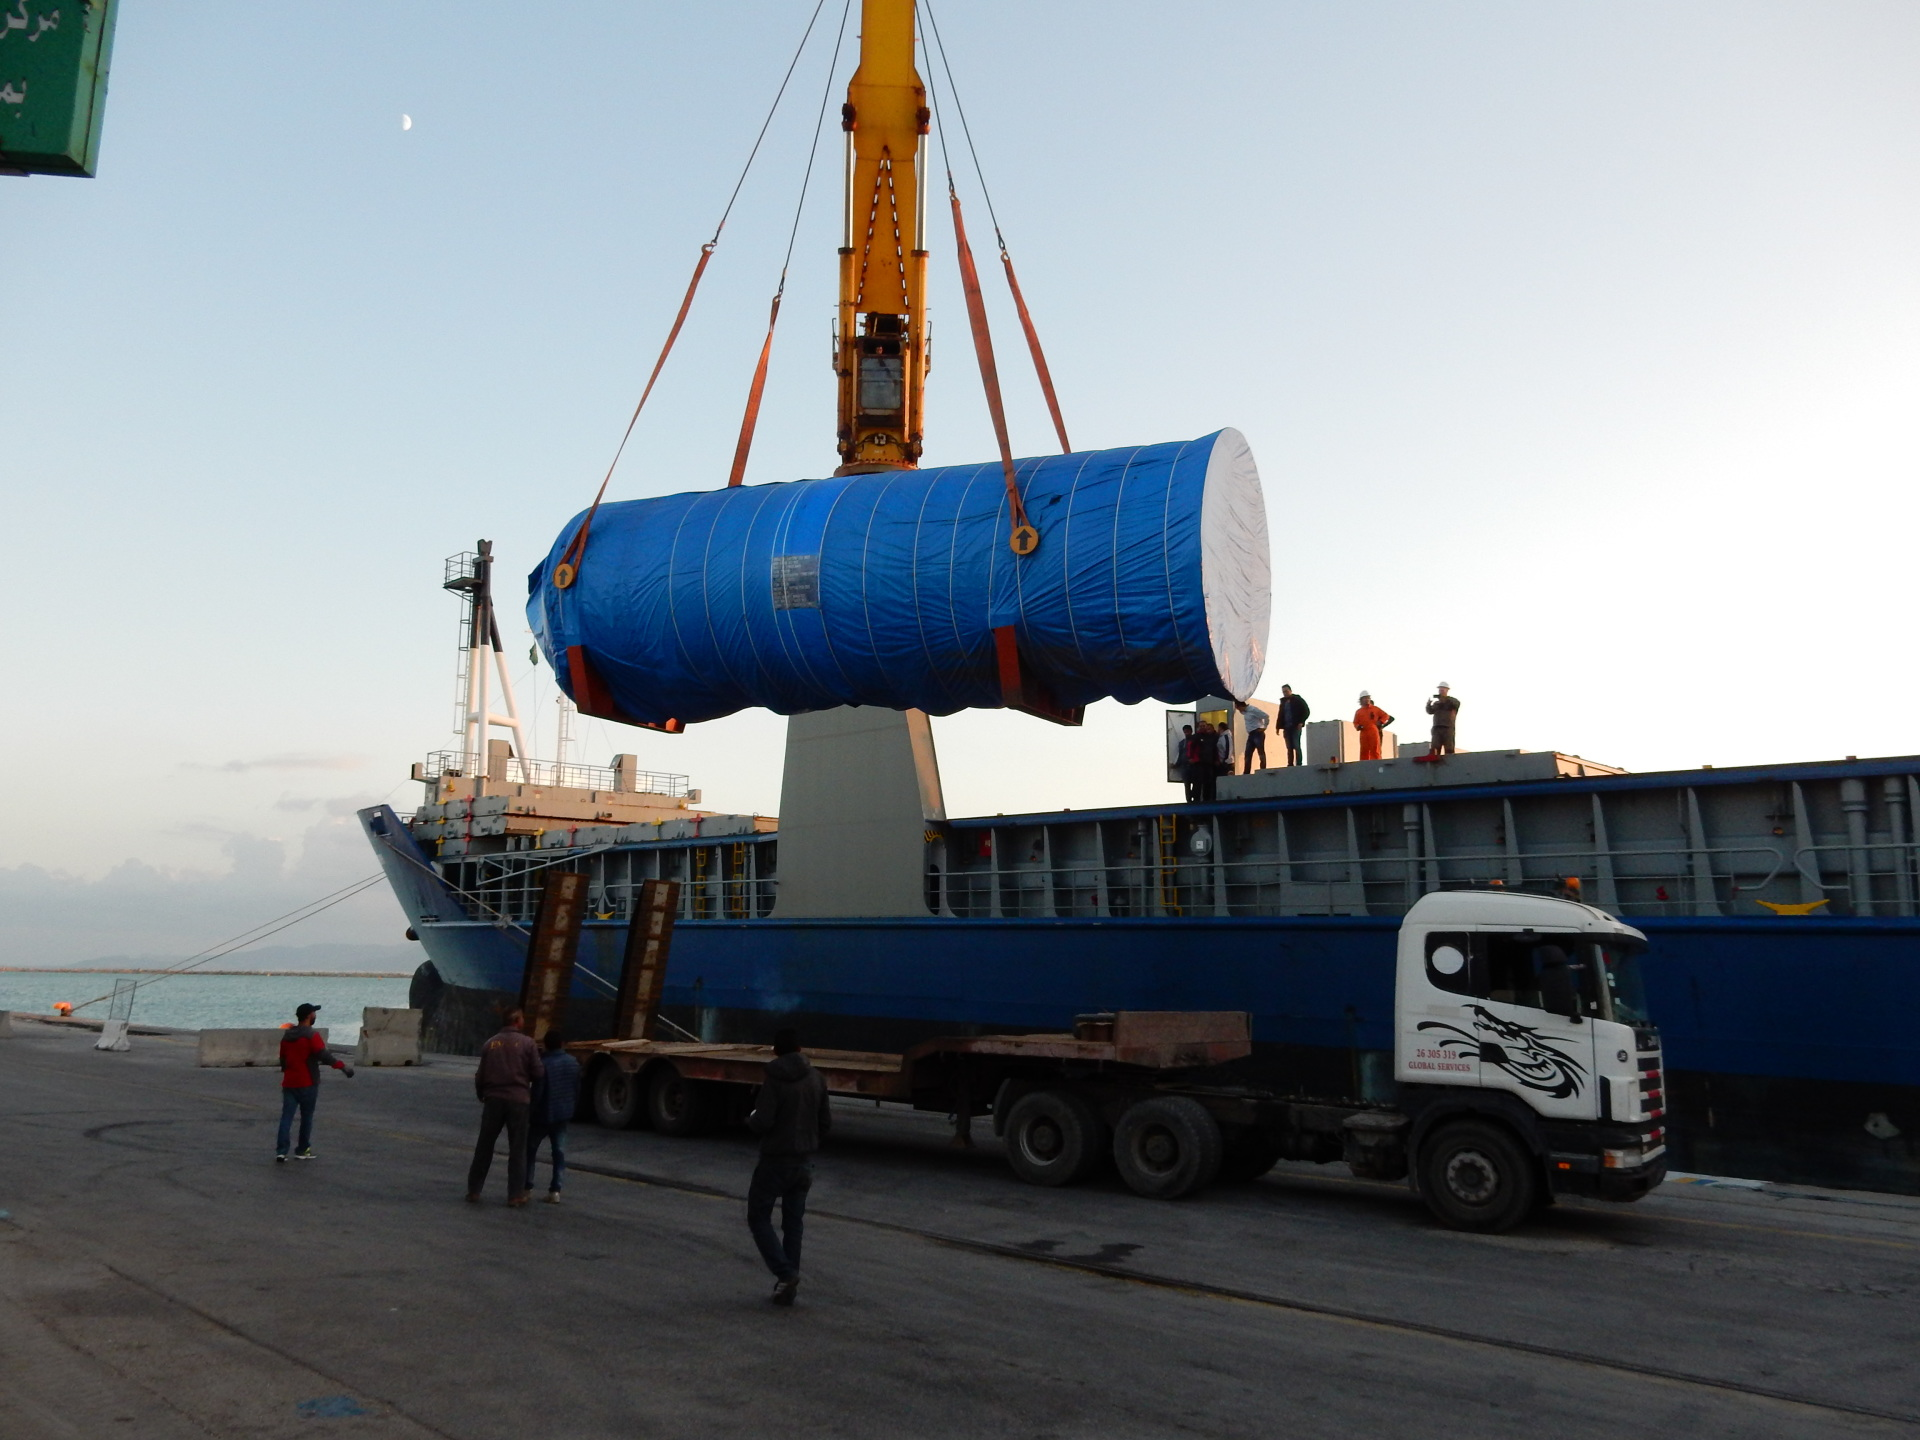 Project Cargo in Rades port